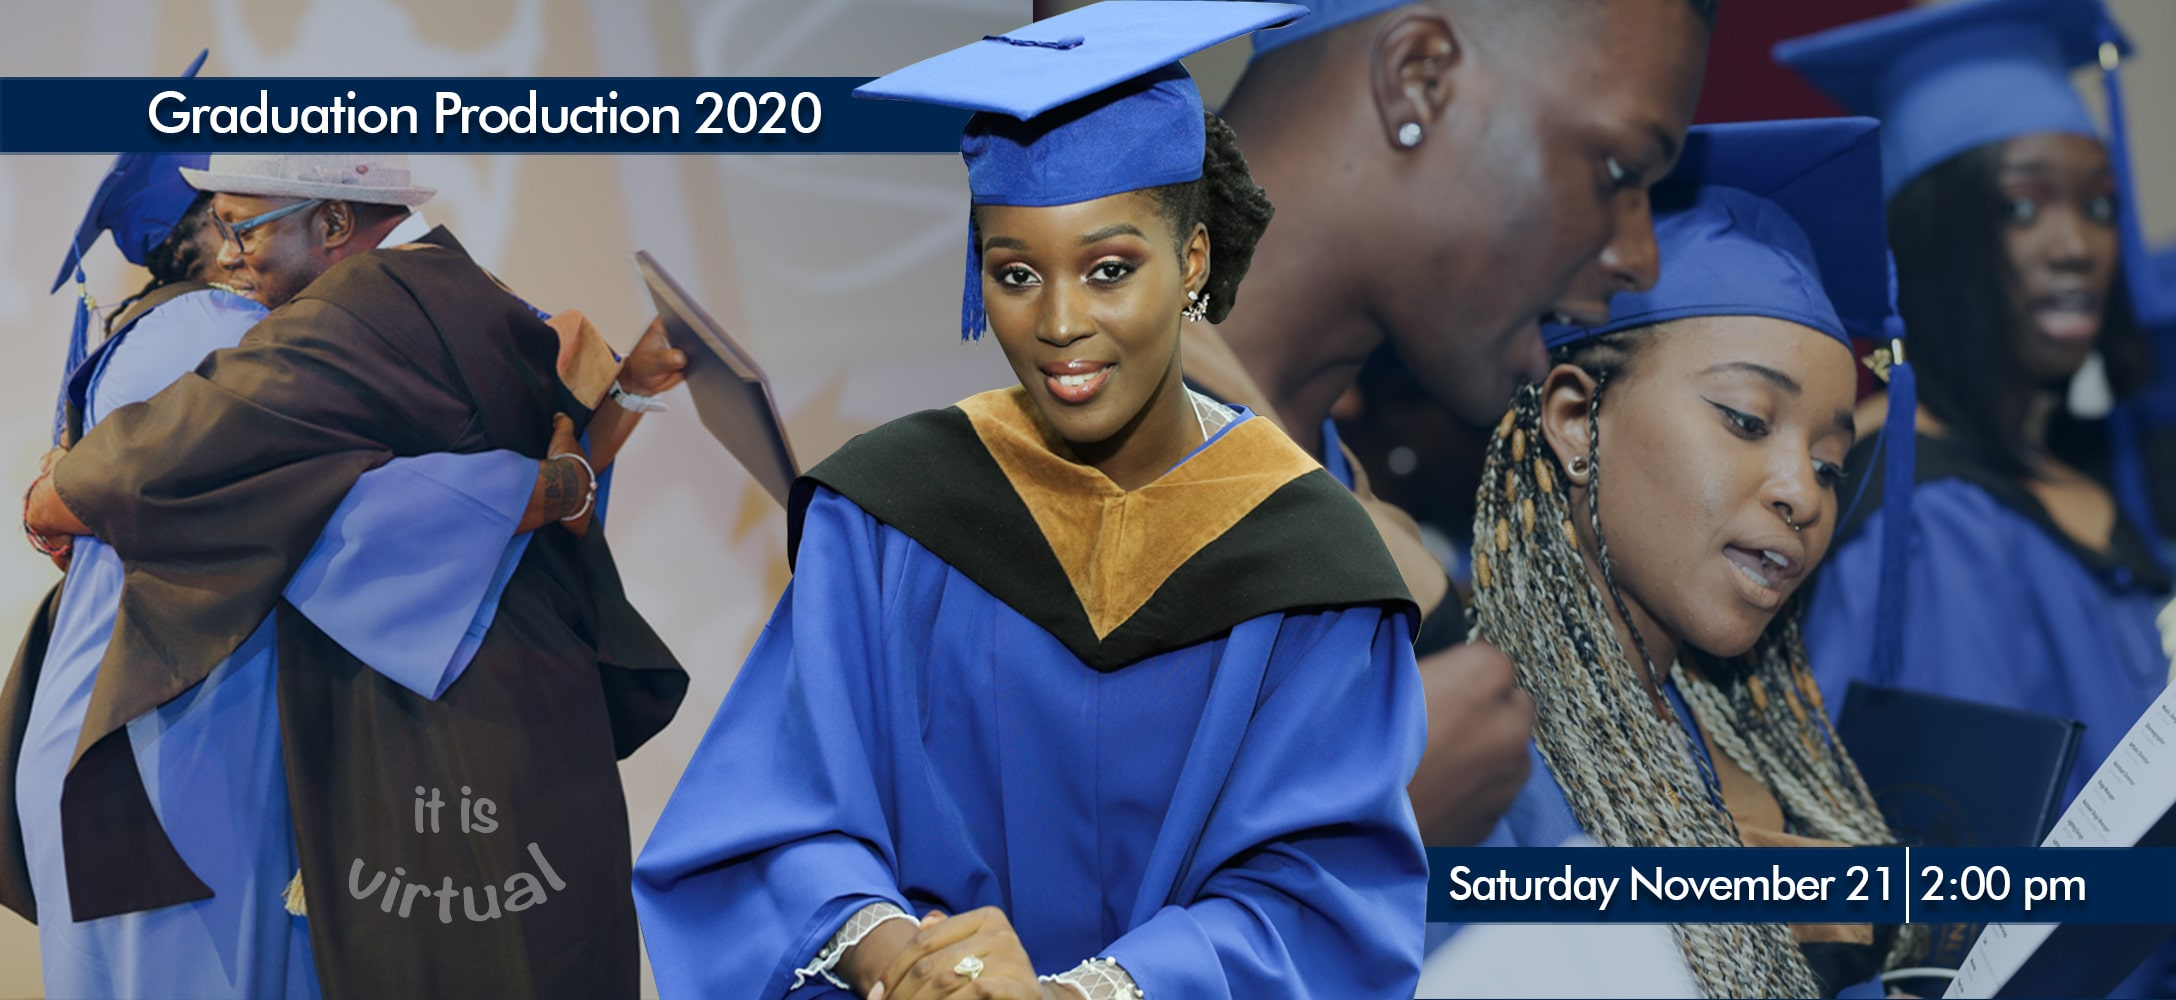 EMCVPA Edna Manley College of the Visual and Performing Arts - Graduation Production 2020-min